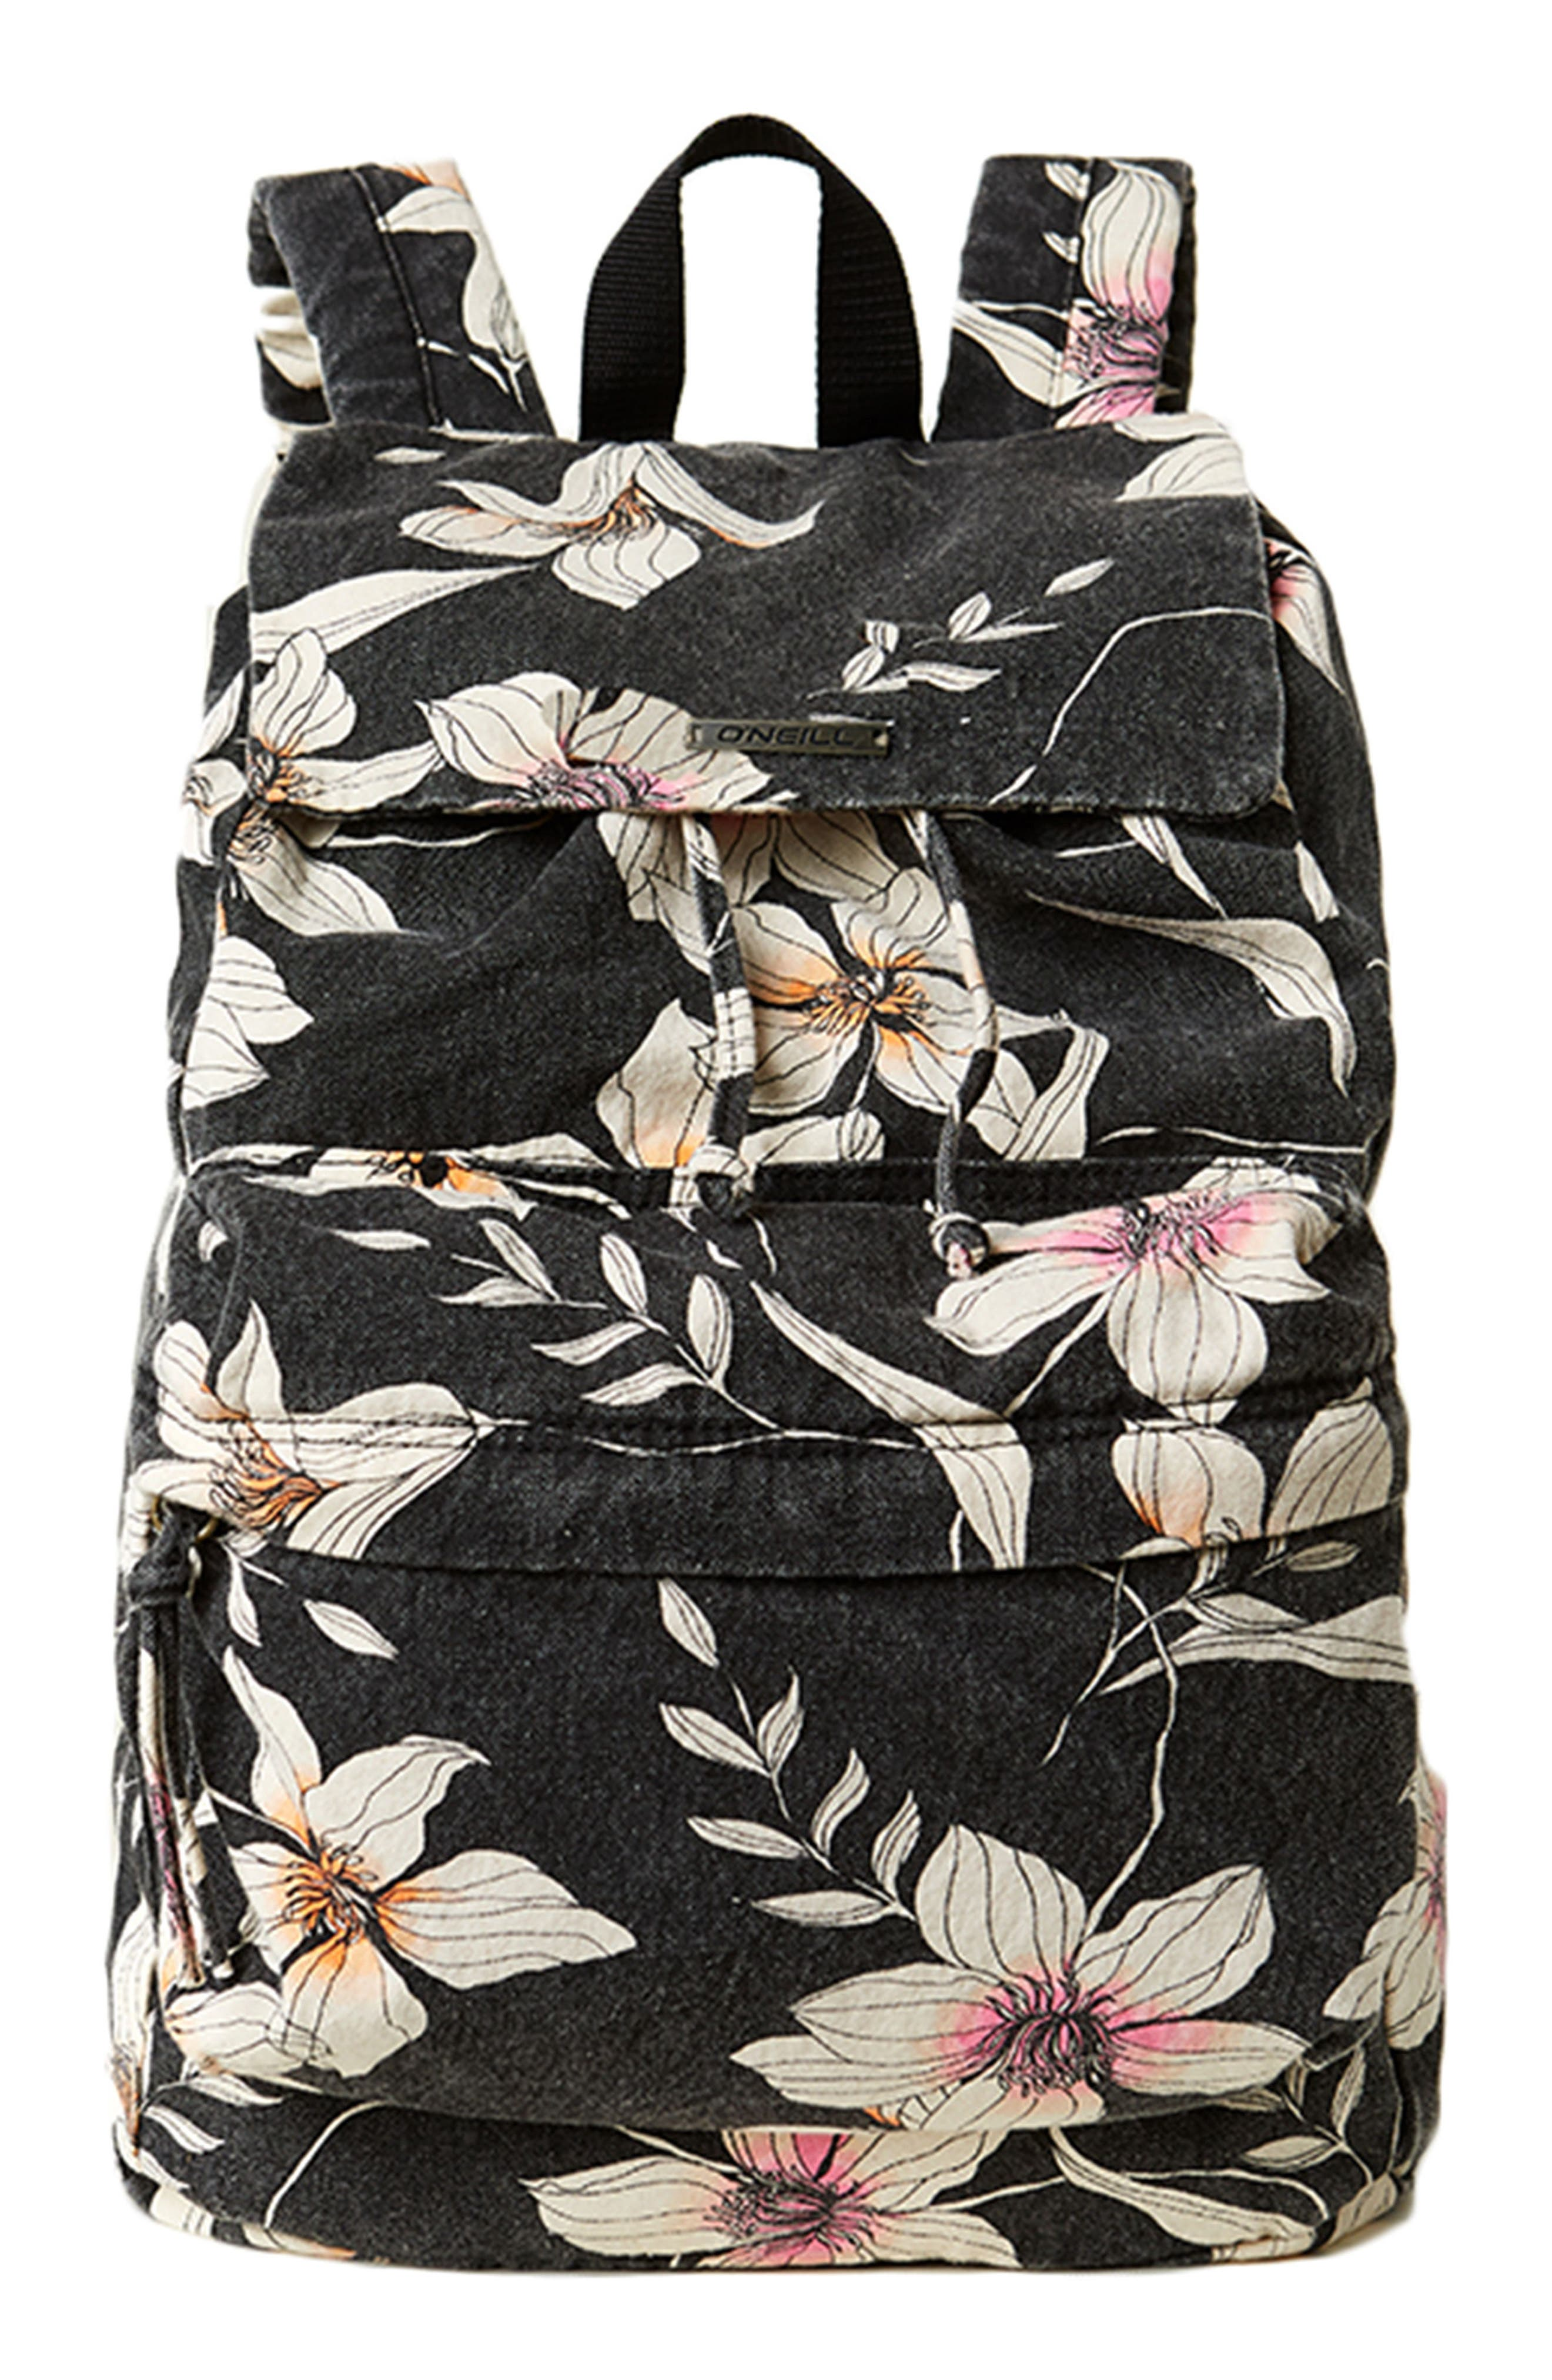 Starboard Floral Print Canvas Backpack,                         Main,                         color,